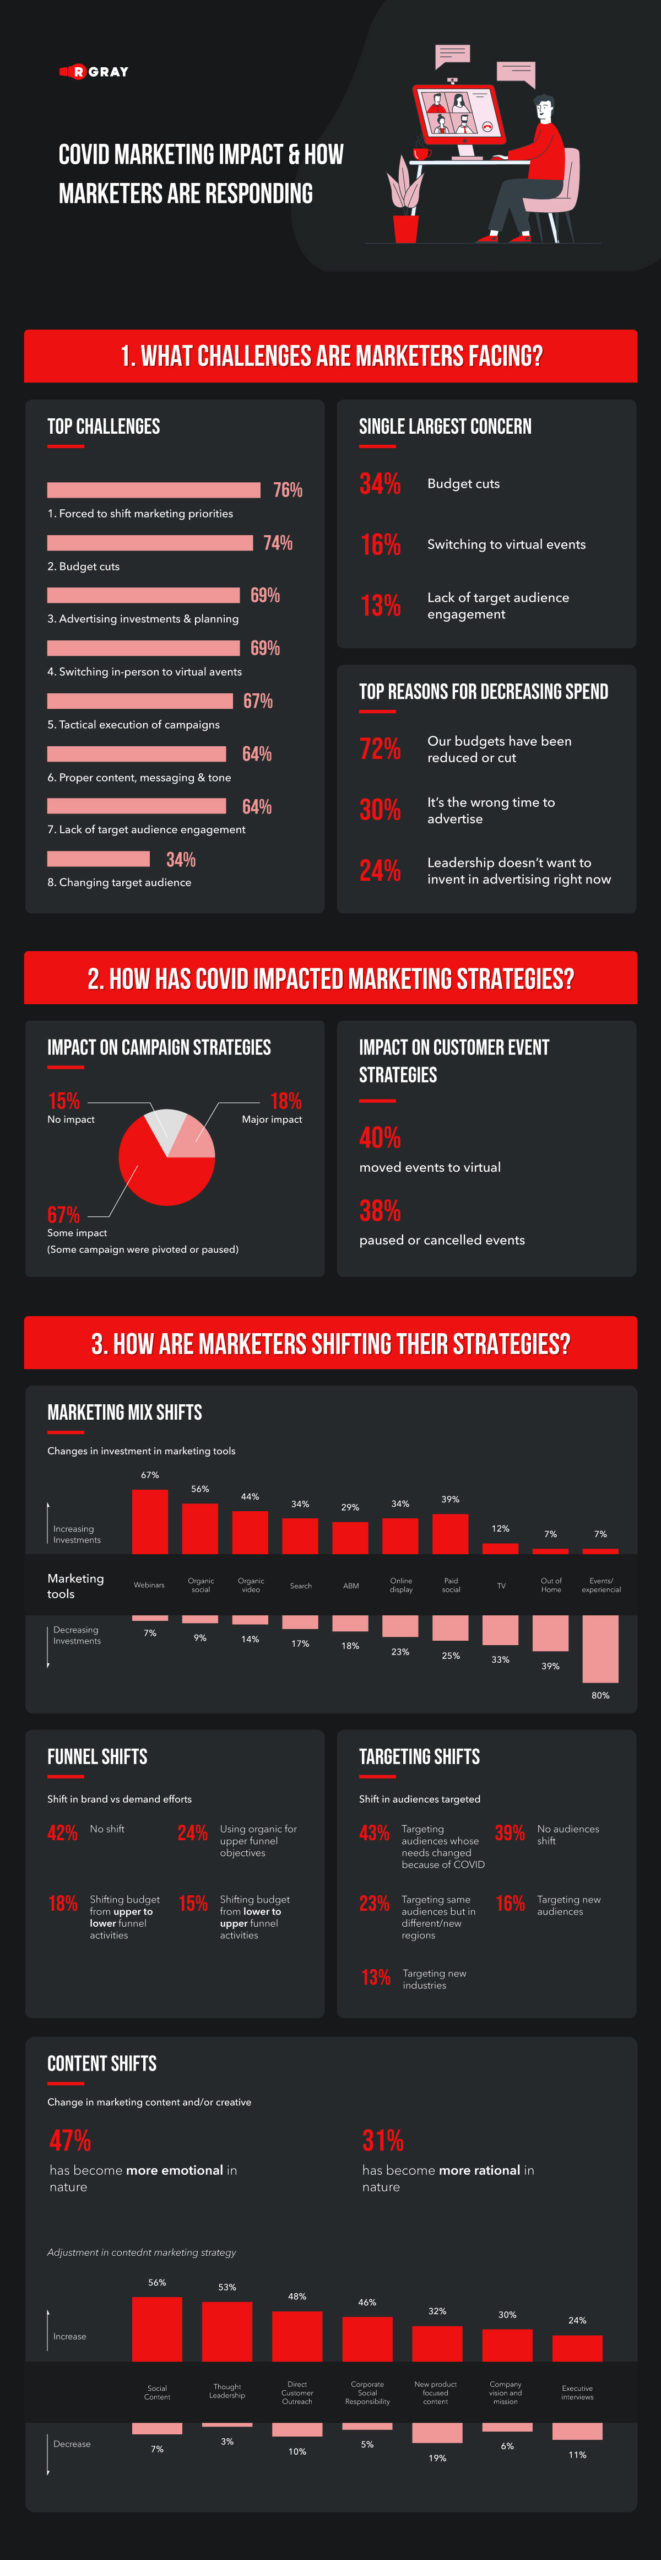 Covid-19 marketing impact and how marketers are responding